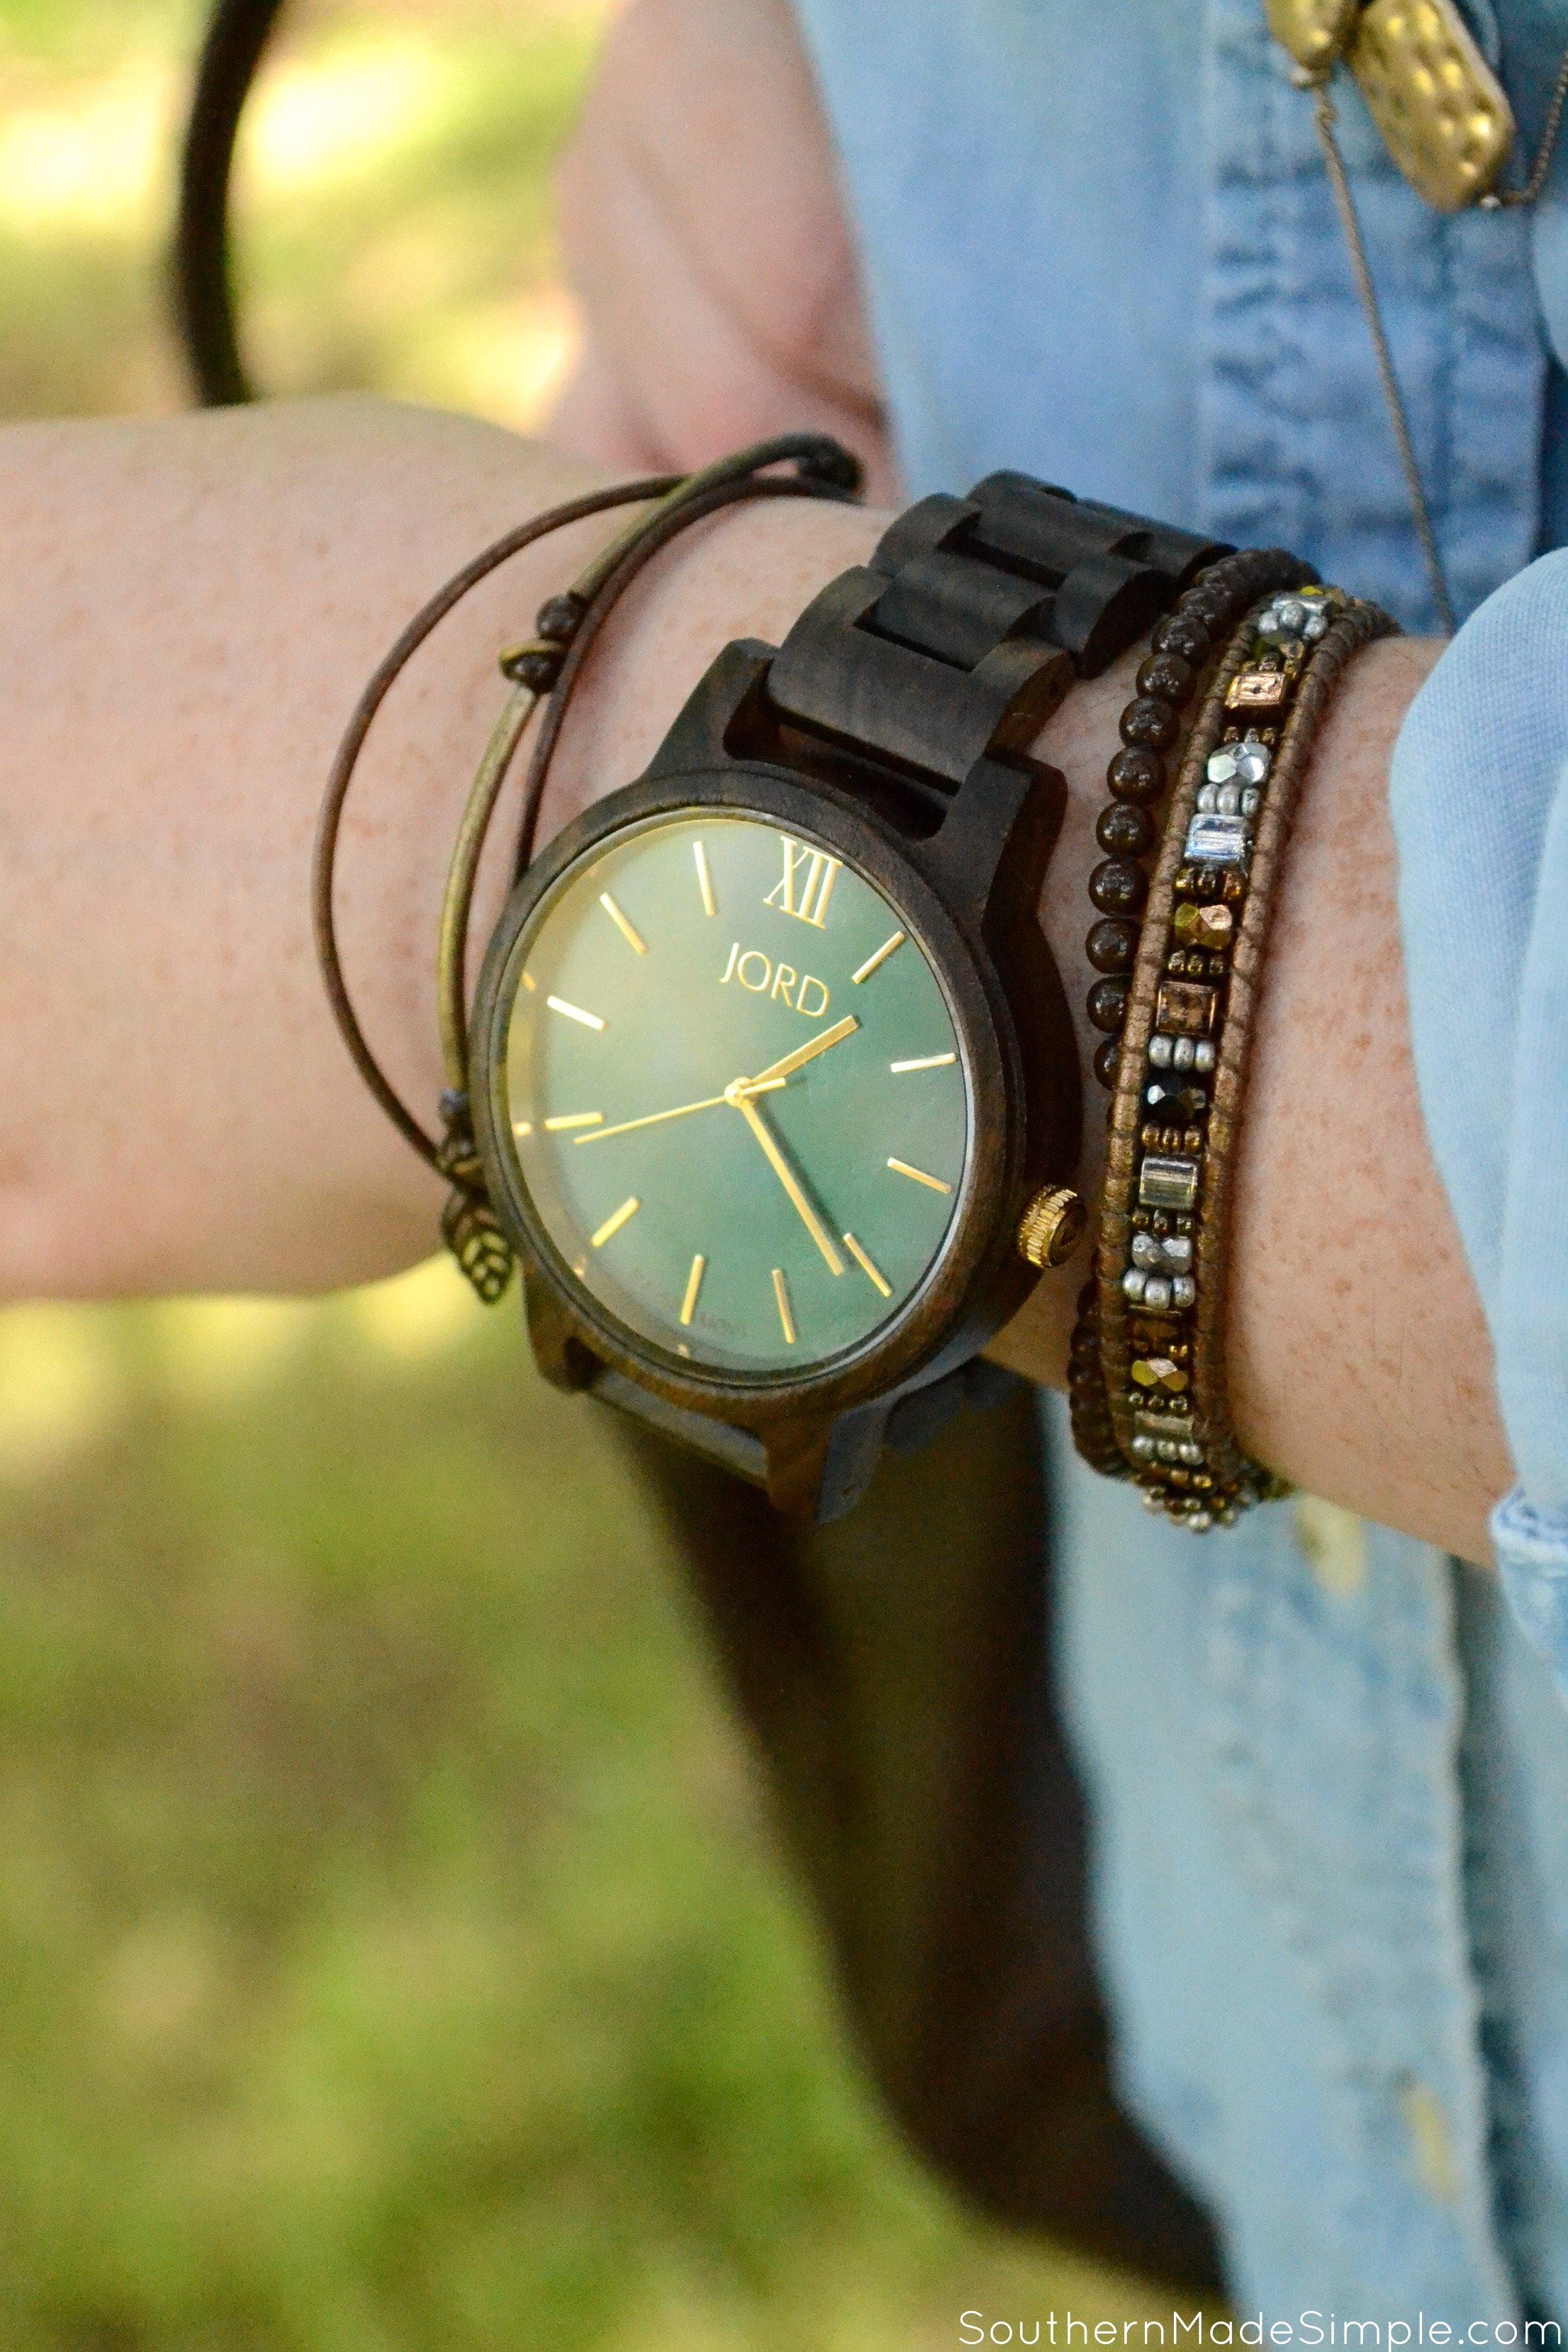 Celebrating every moment with JORD #jordwatch #woodwatch #gradgift #mothersday